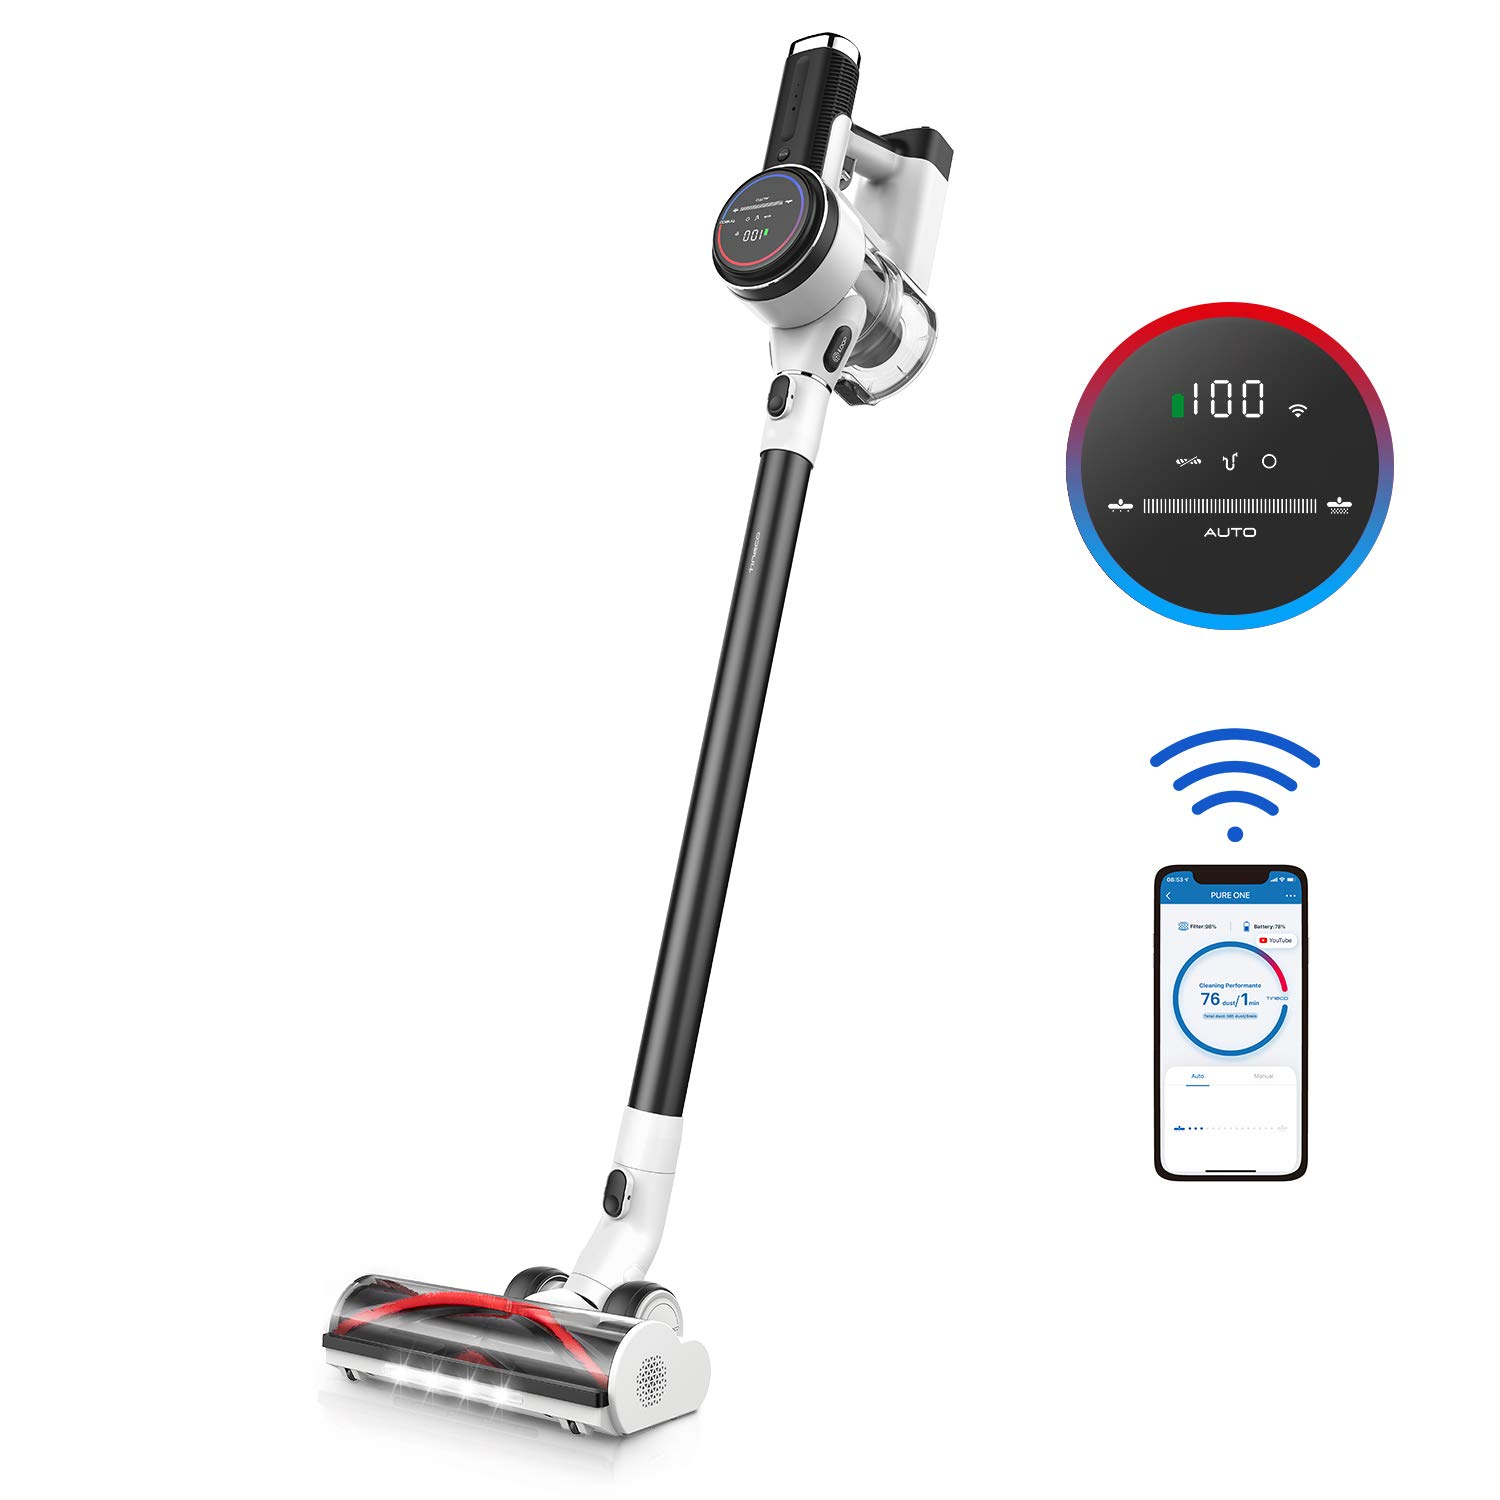 Cordless Vacuum Cleaner- Key Features To Know About